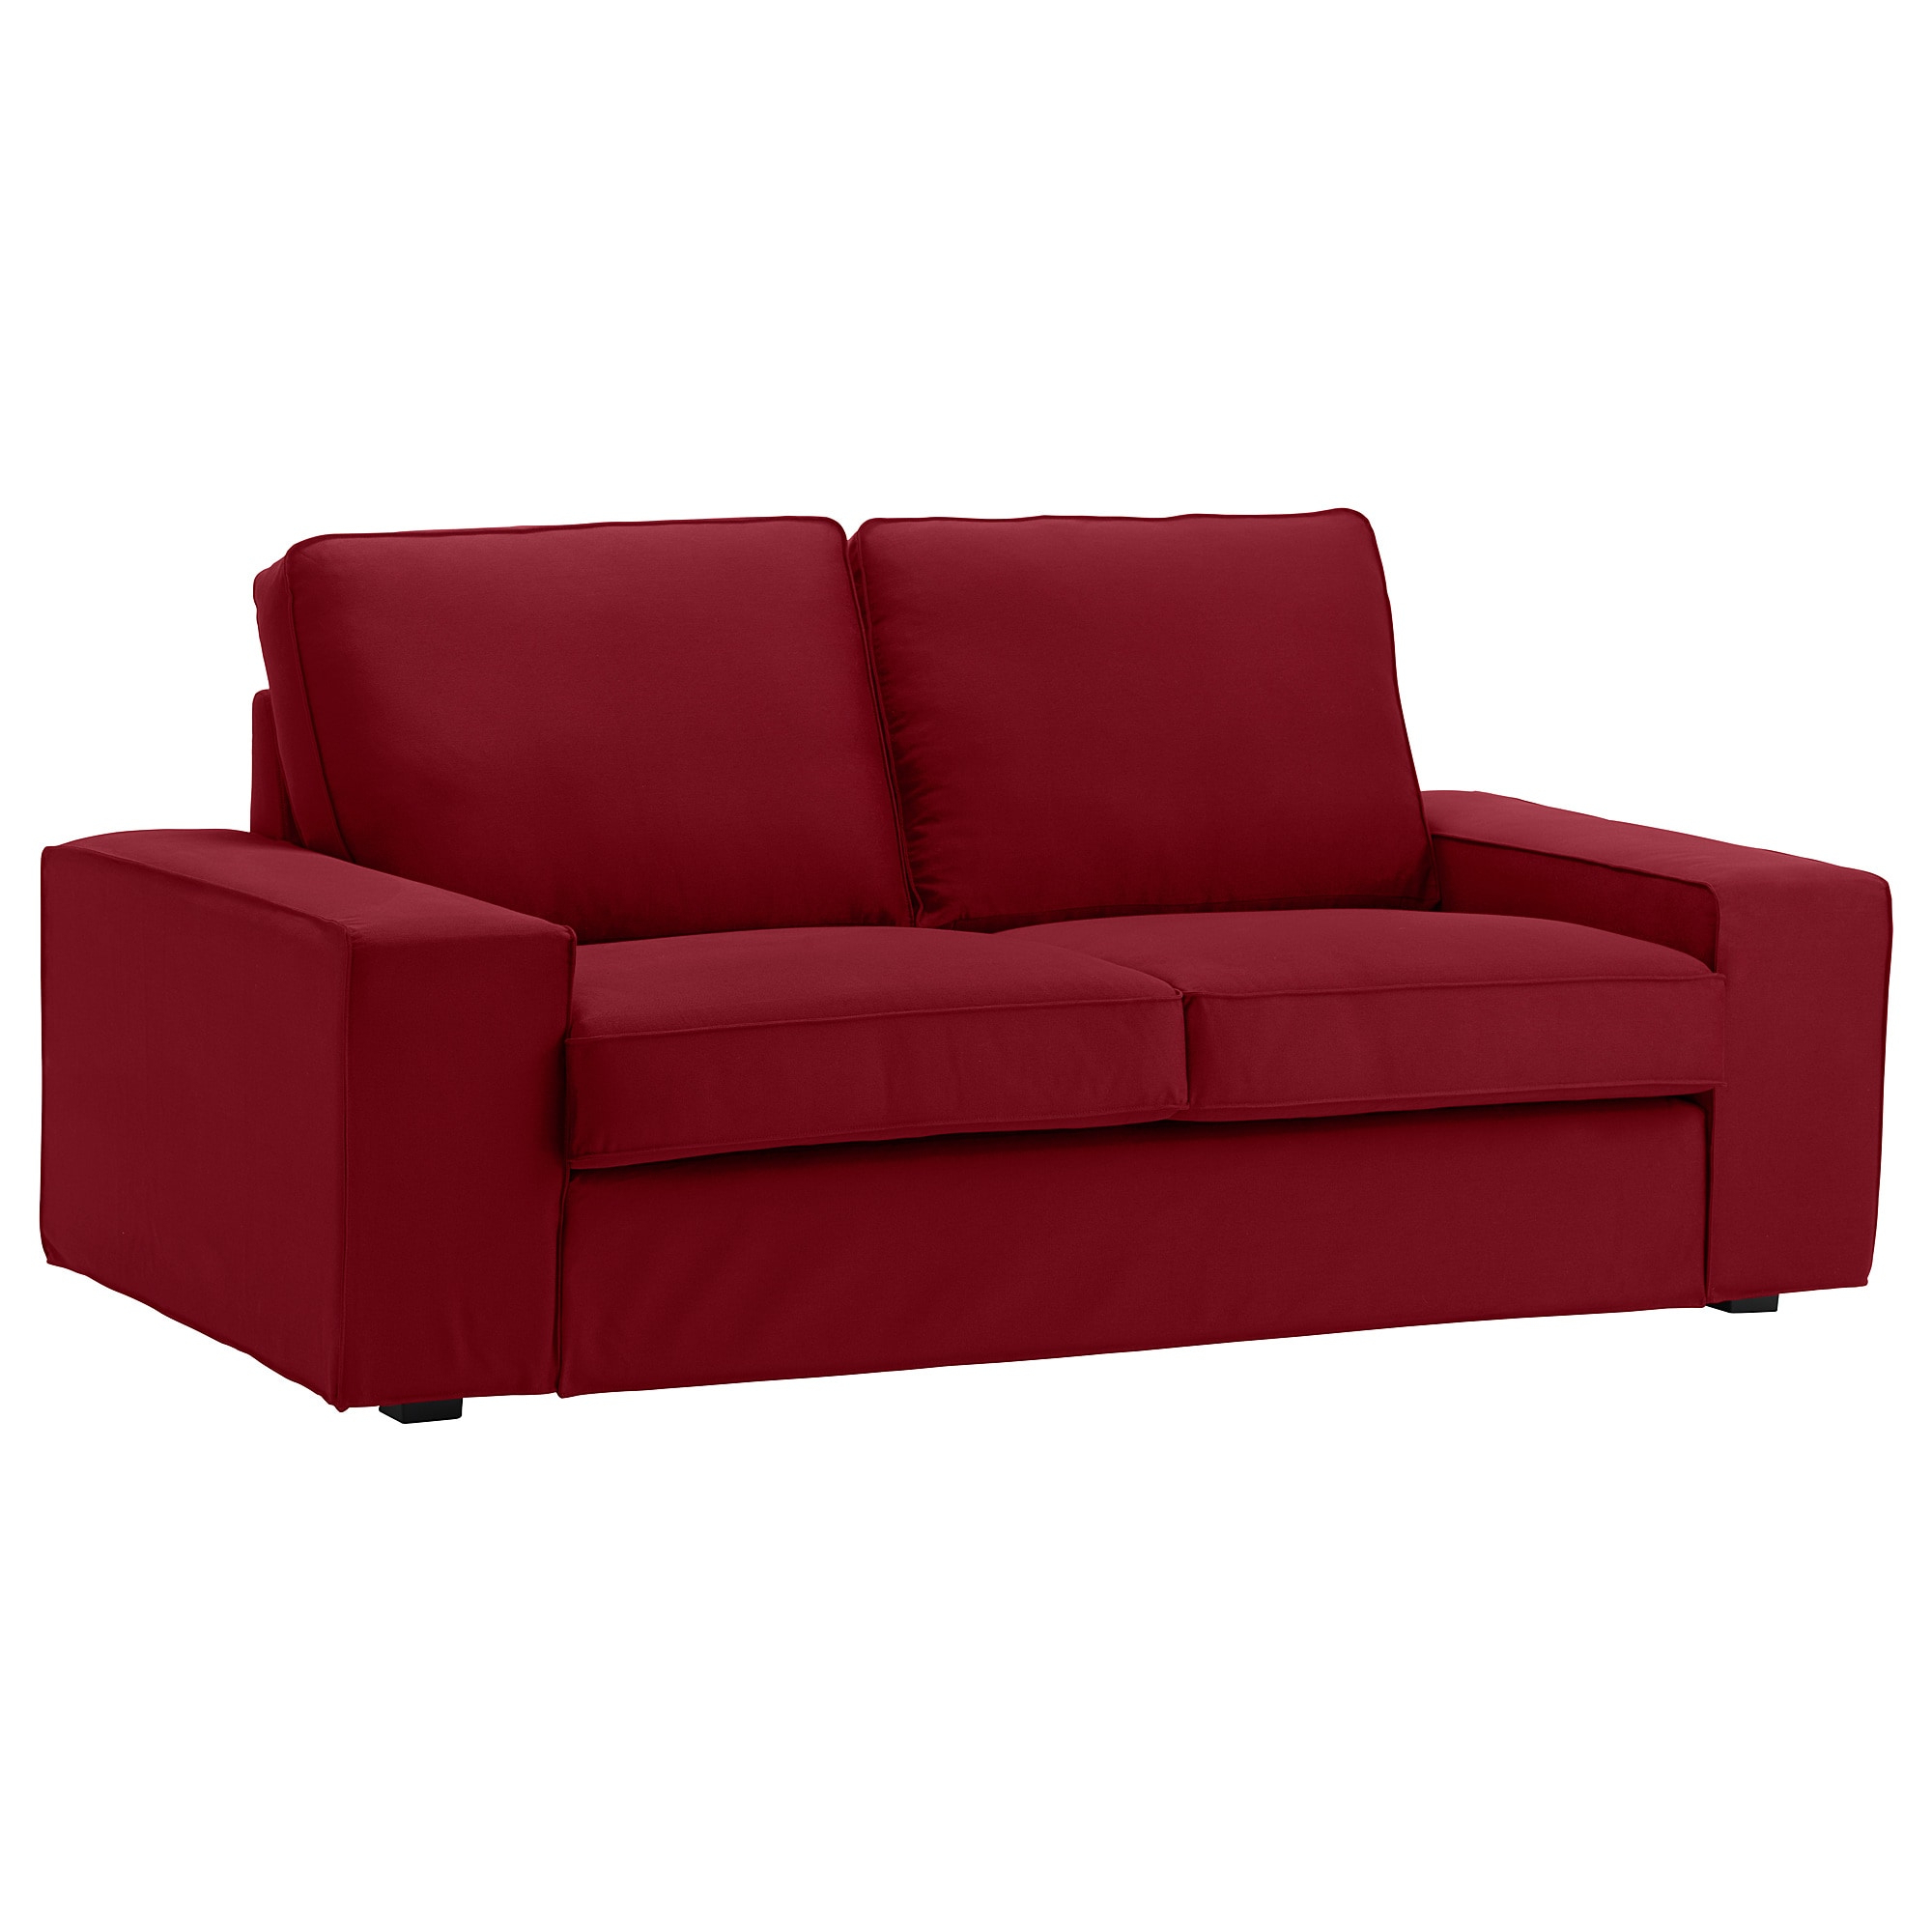 Ikea For Popular Red Sofas And Chairs (Gallery 20 of 20)